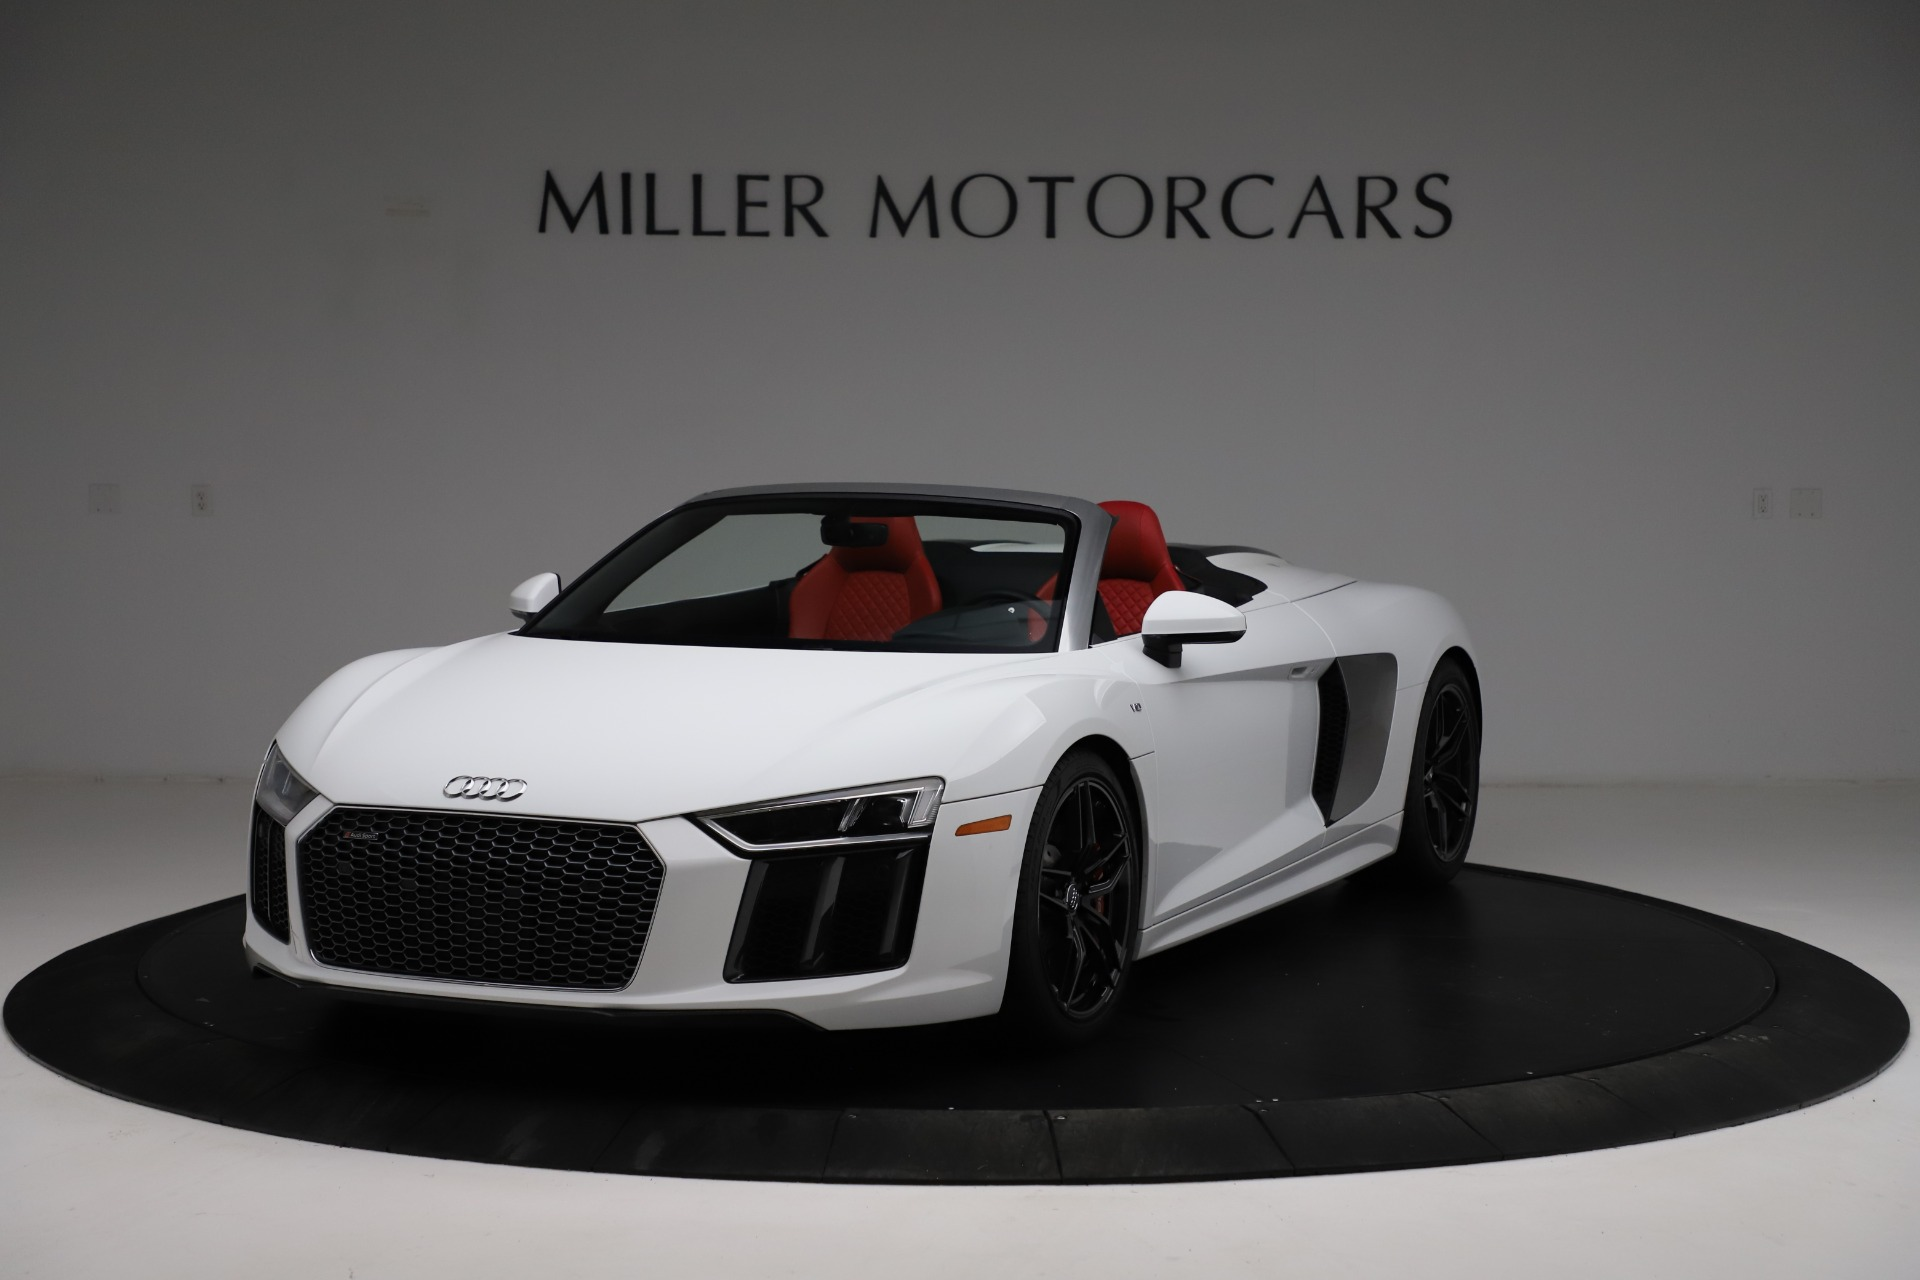 Used 2018 Audi R8 Spyder for sale $154,900 at Alfa Romeo of Greenwich in Greenwich CT 06830 1